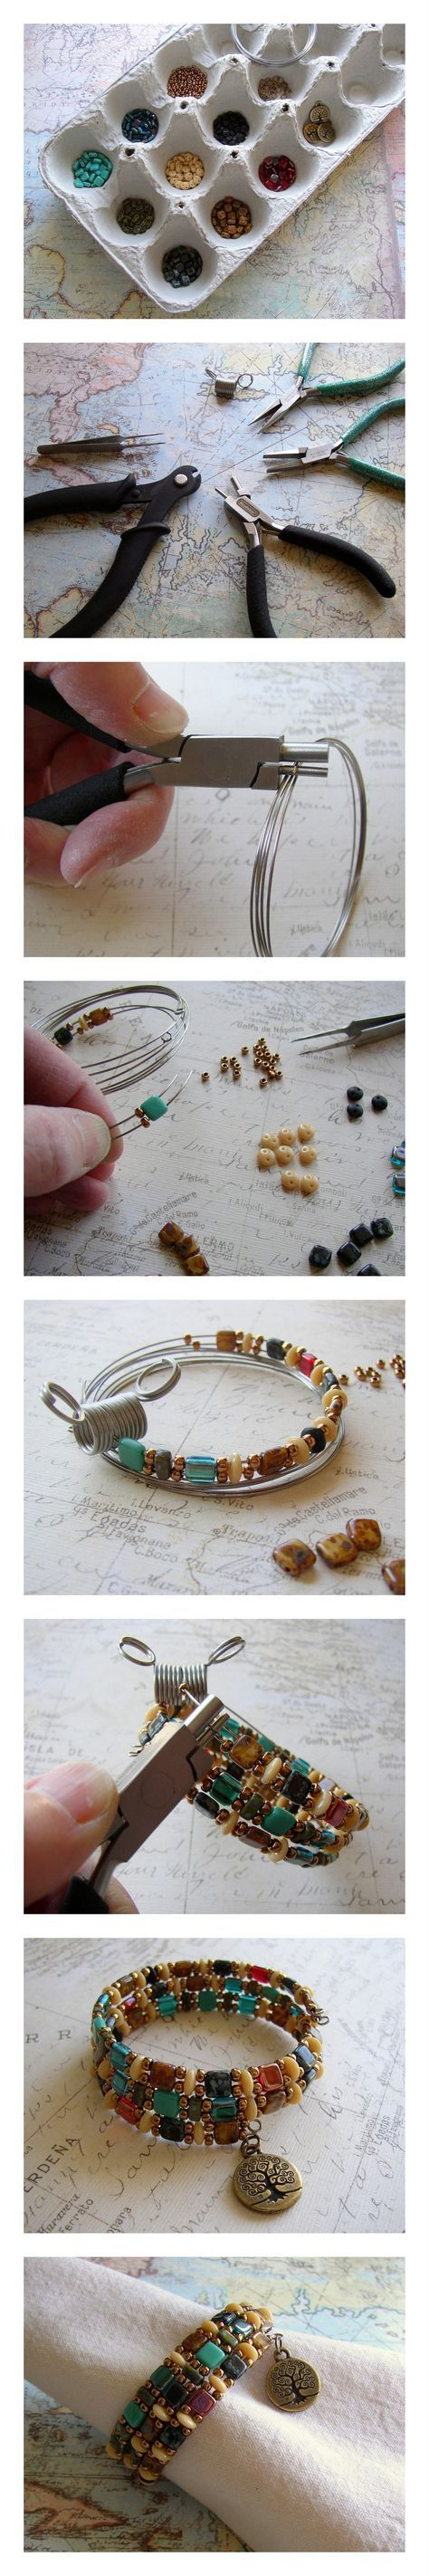 DIY Beaded Bracelet! Use memory wire, Czechmates two-hole beads, and a TierraCast charm to make this easy jewelry project. Free instructions on Rings & Things jewelry making blog.